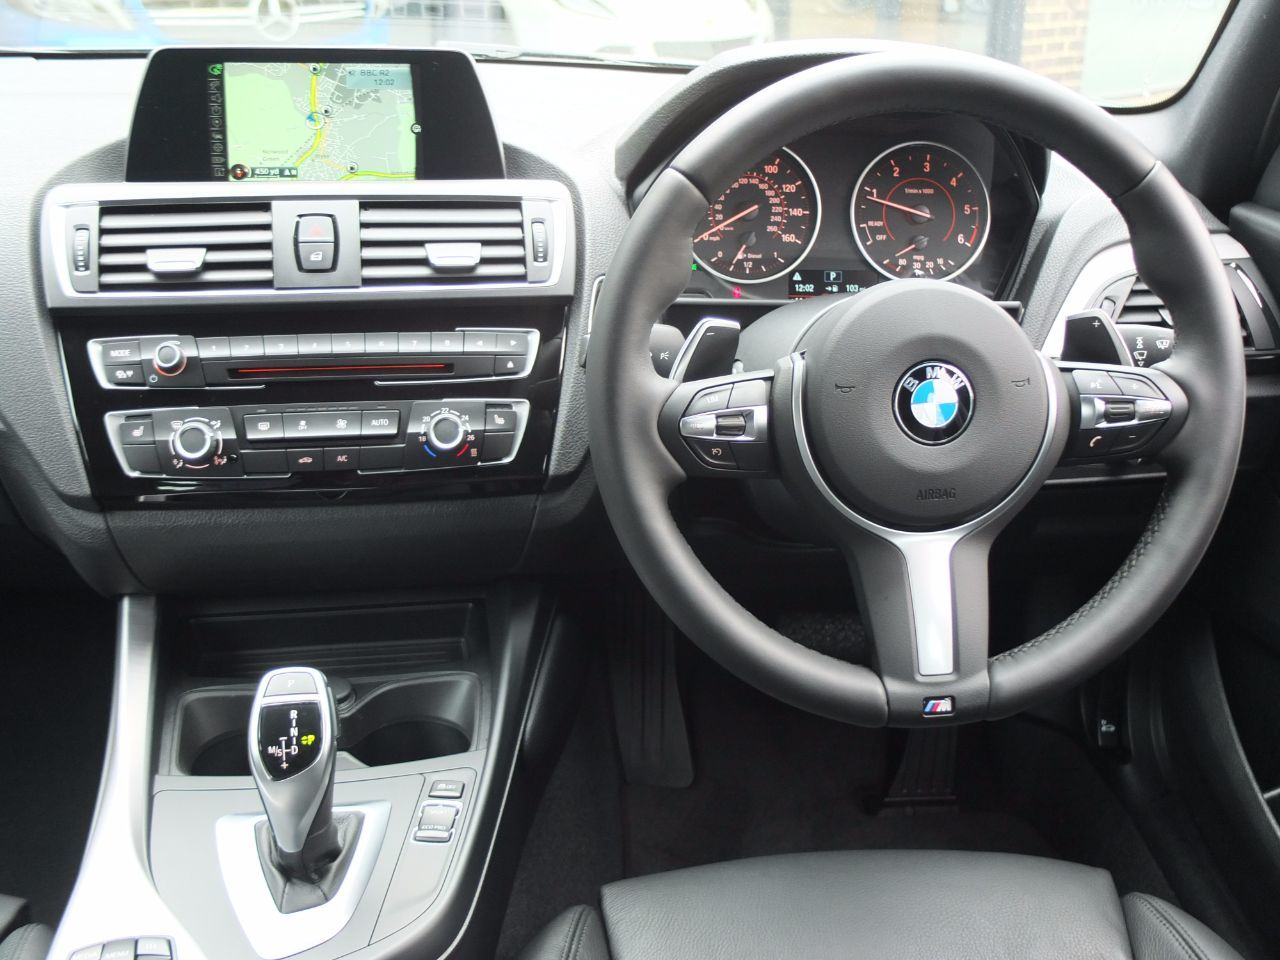 BMW 1 Series 2.0 125D M Sport 5 door Auto 224bhp Hatchback Diesel Mineral Grey Metallic